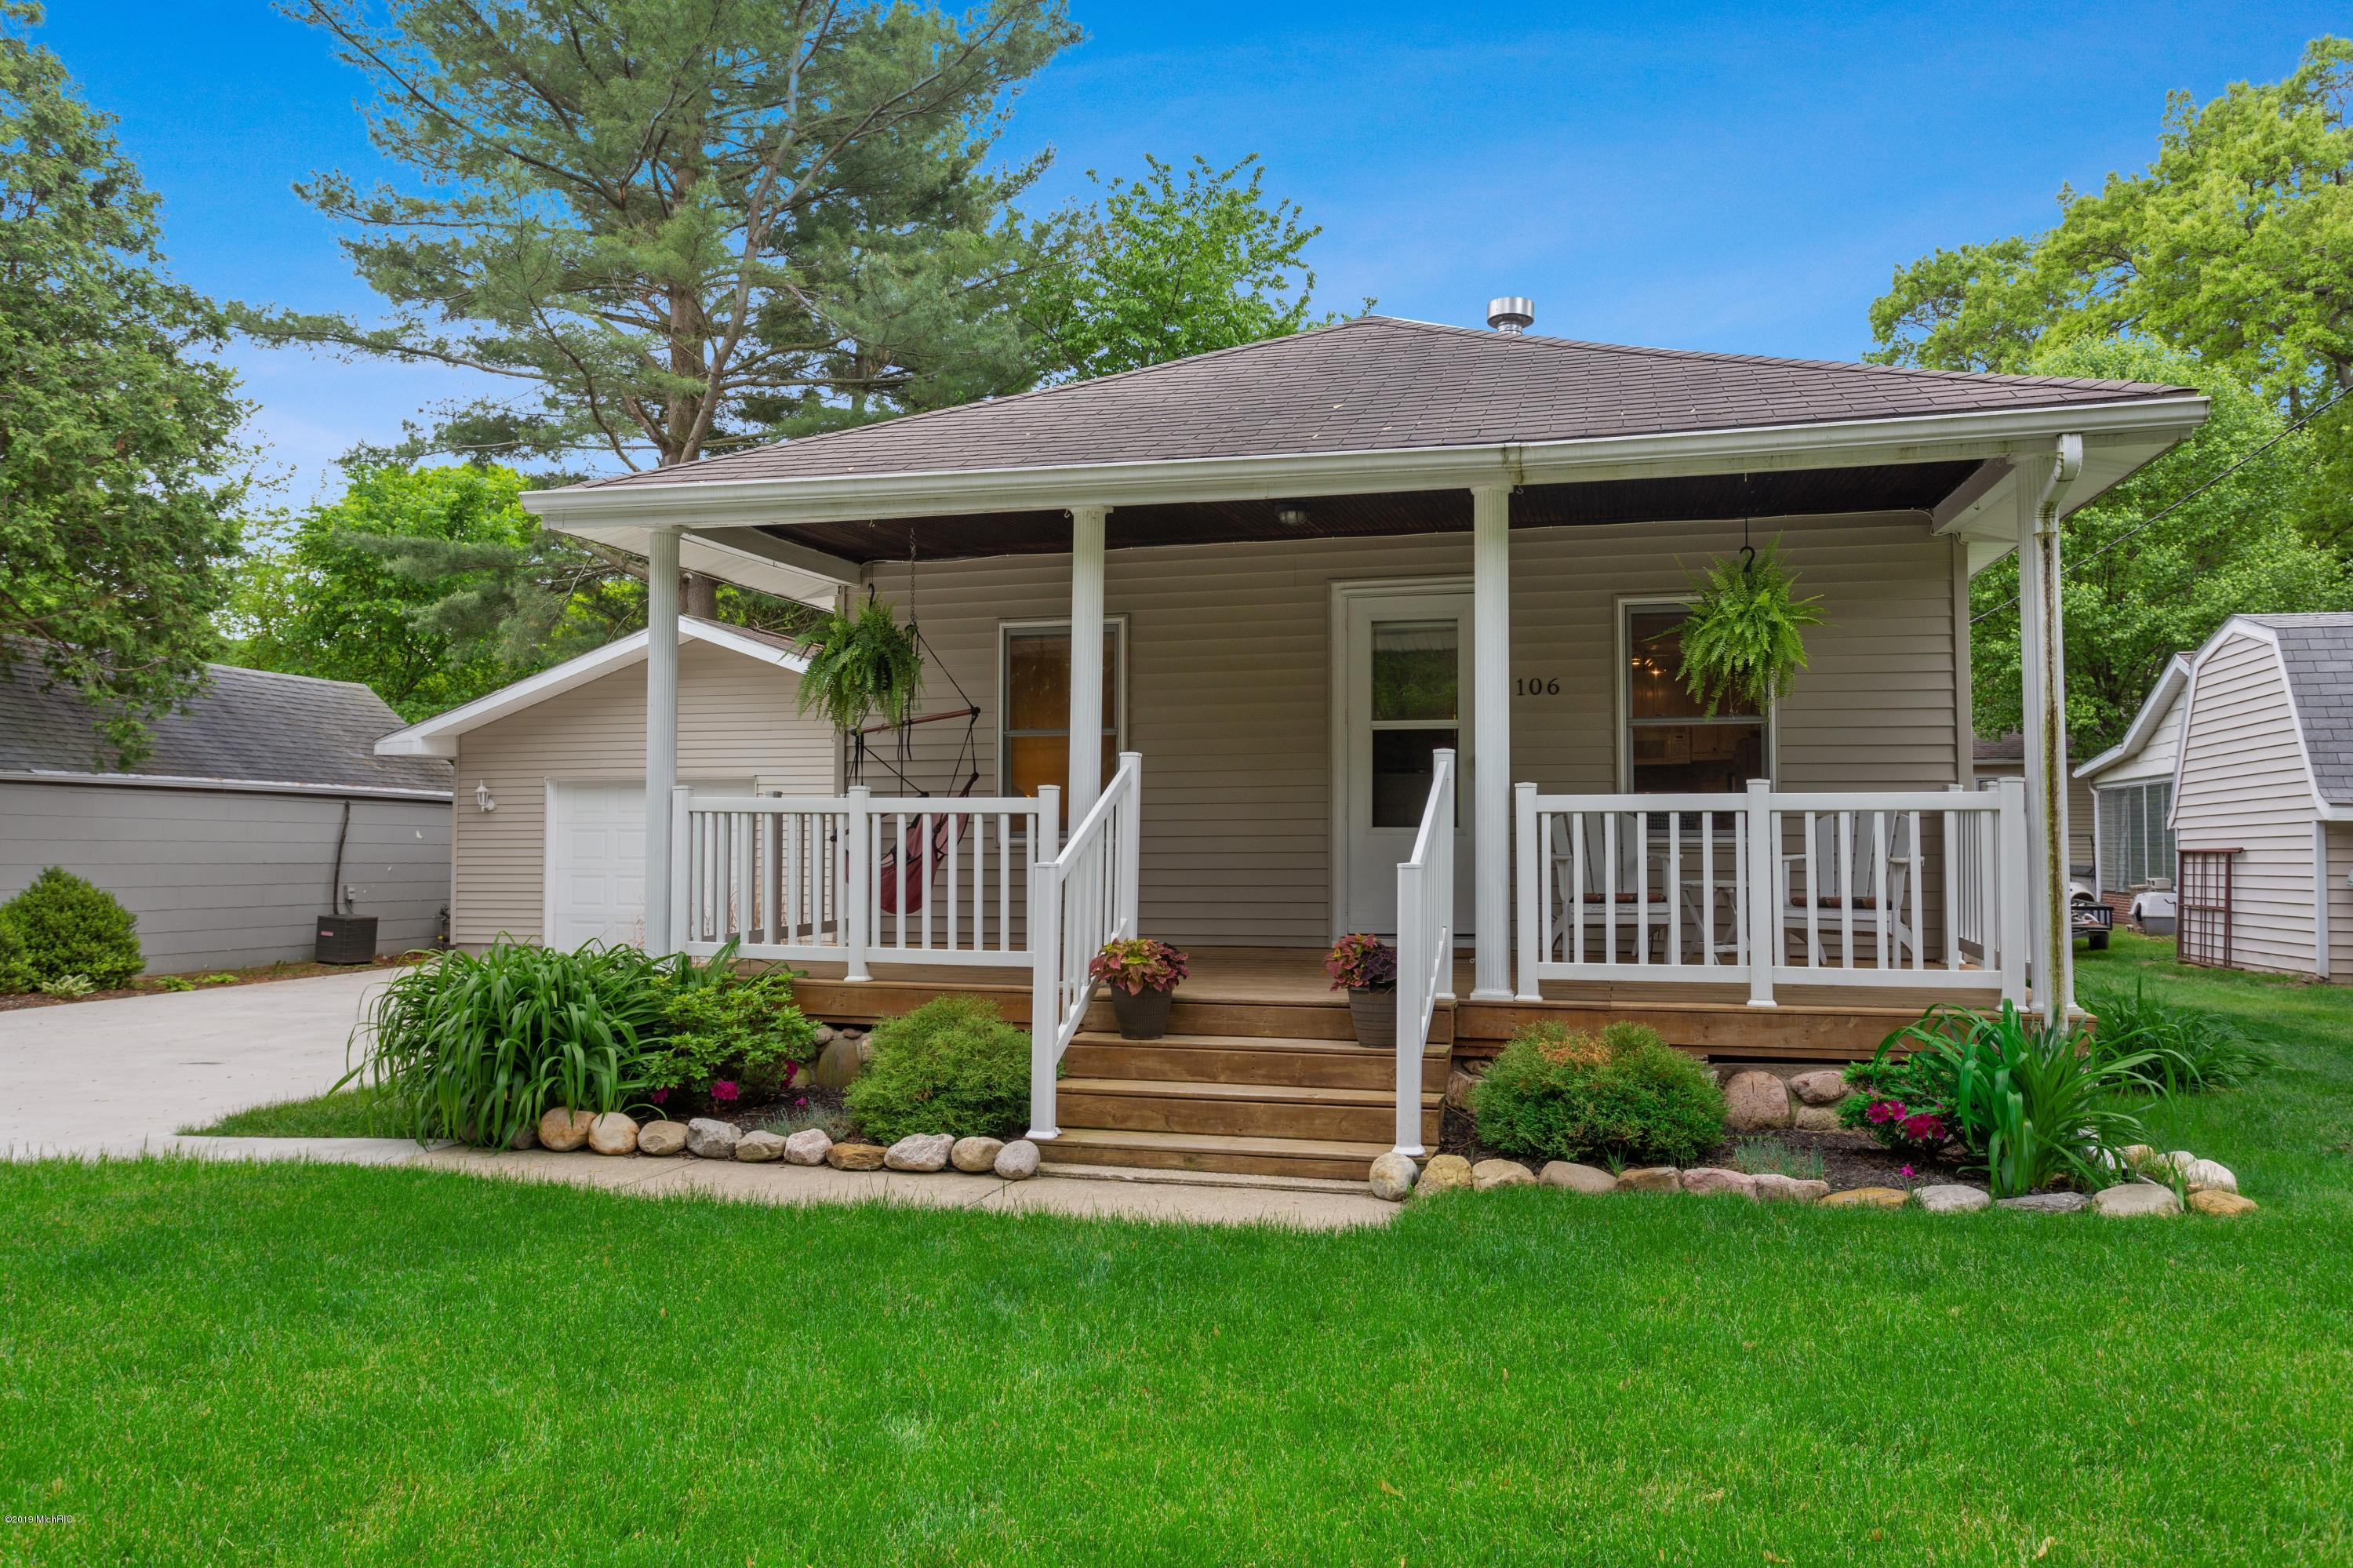 106 Taylor Street, New Buffalo, Michigan 49117, 2 Bedrooms Bedrooms, ,1 BathroomBathrooms,Residential,For Sale,Taylor,19023974